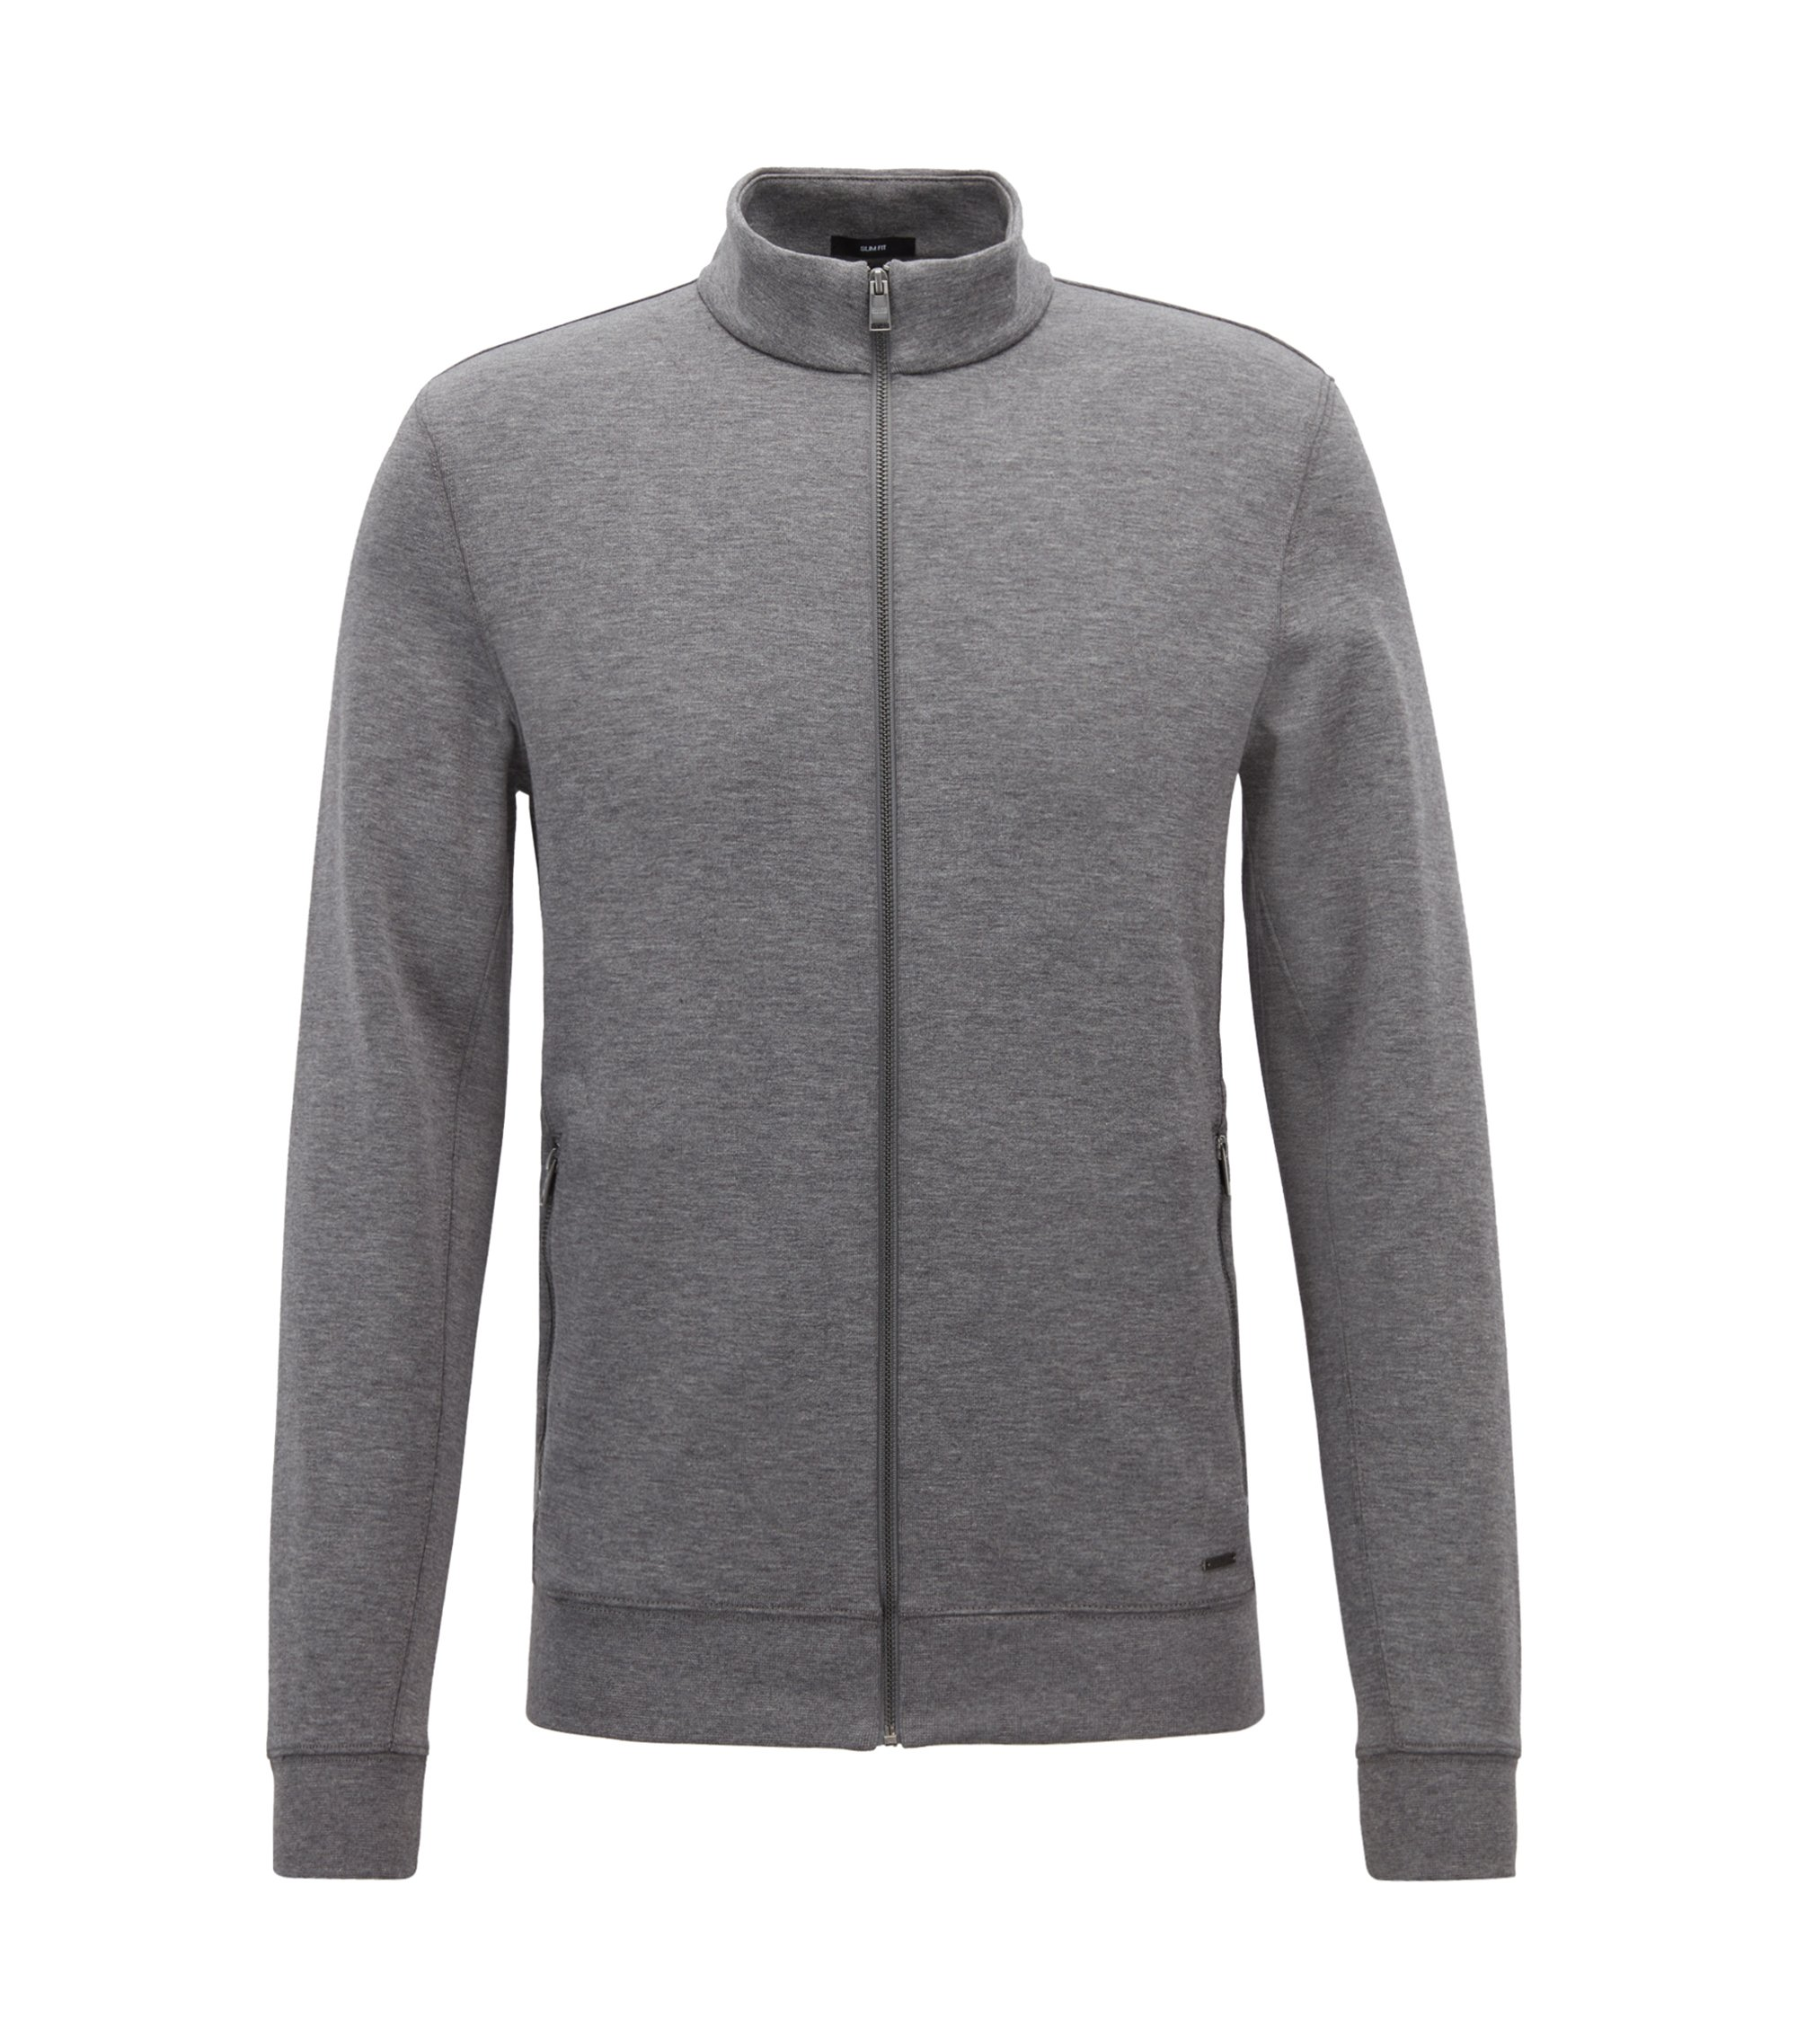 Zip-through sweatshirt in a double-faced cotton blend, Grey